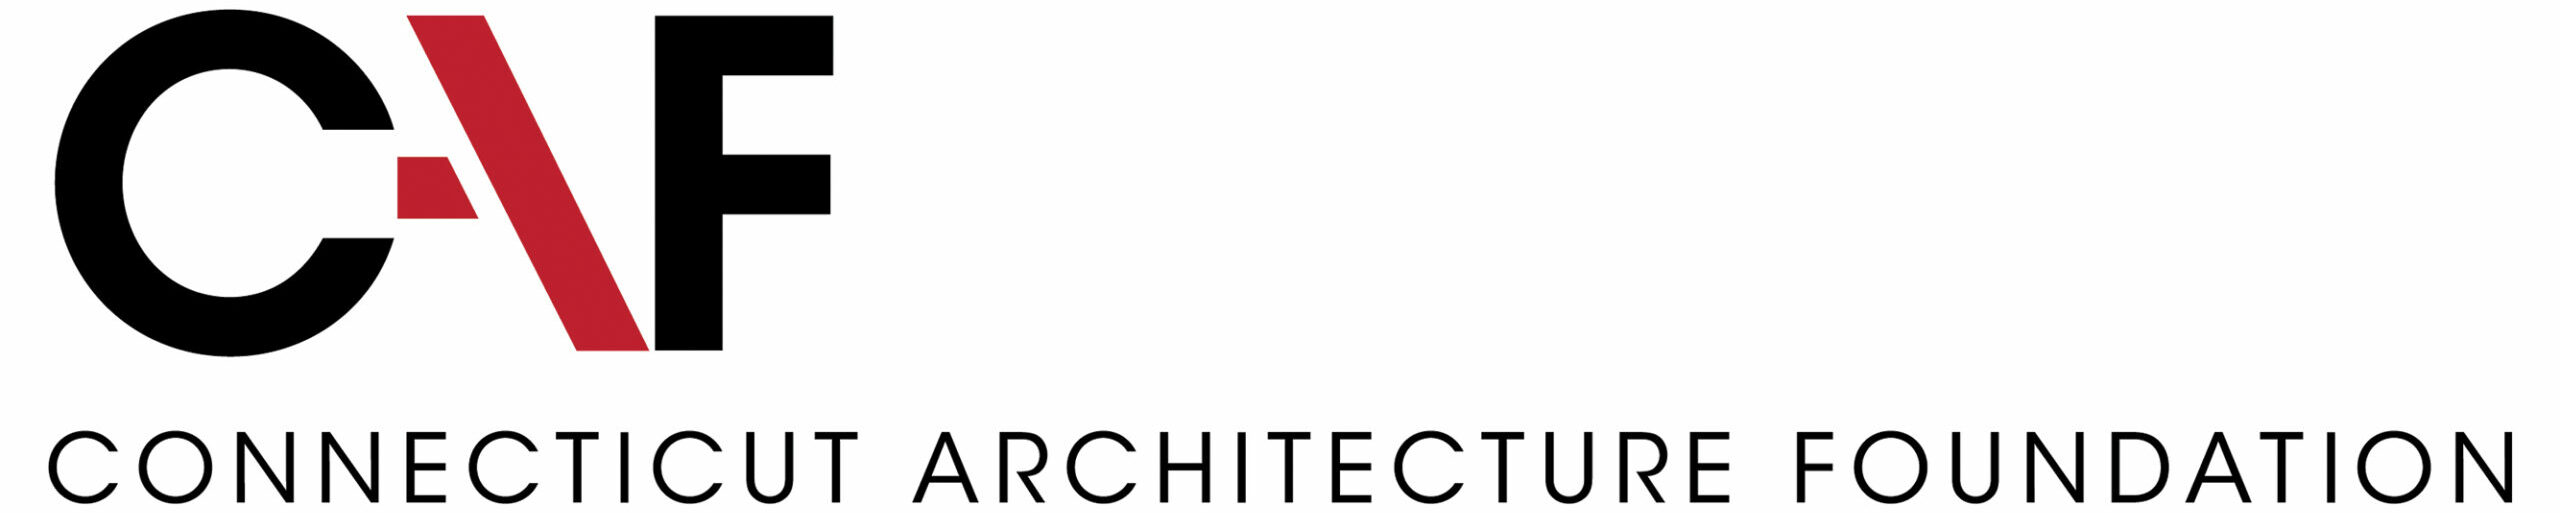 Connecticut Architecture Foundation